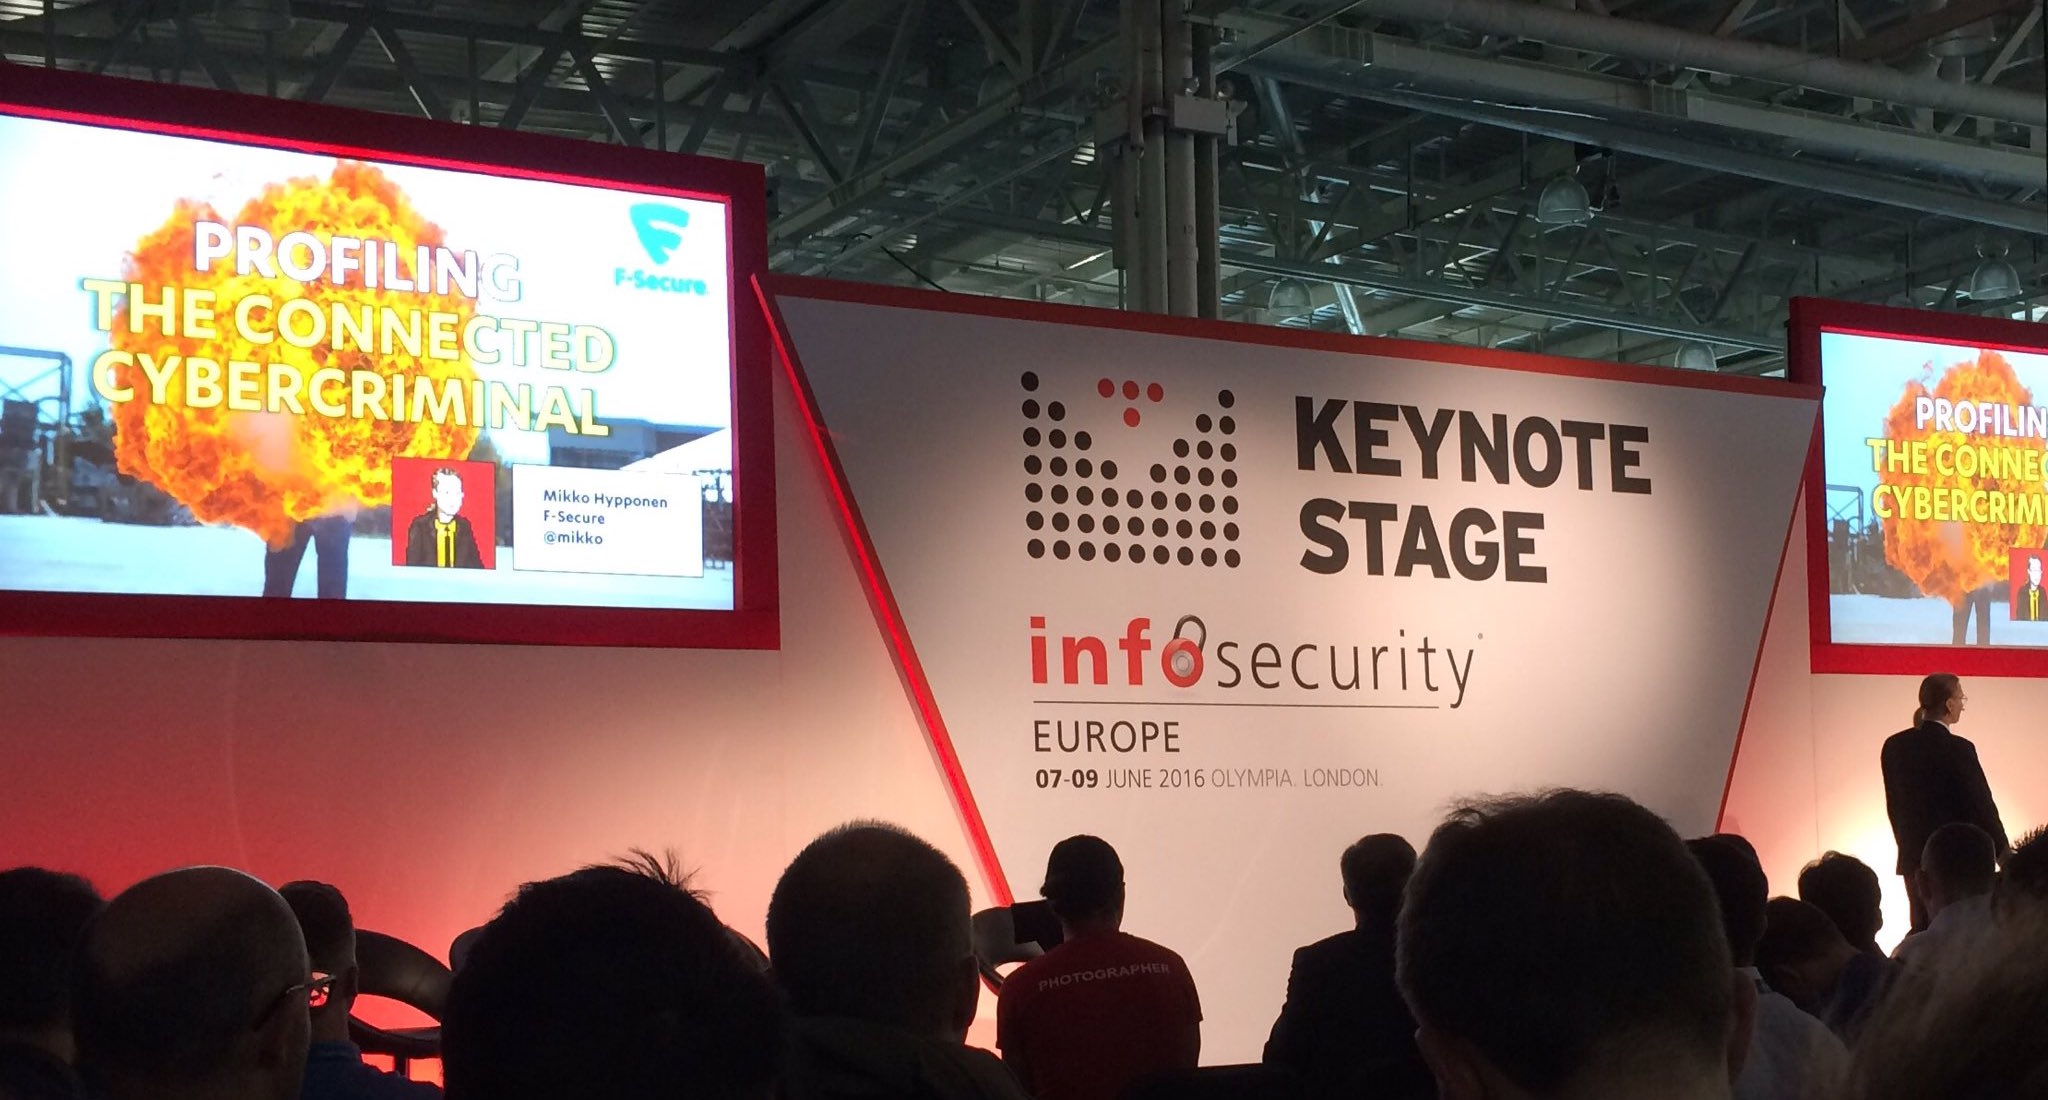 InfoSecurity Europe: Connecting the Cybercriminal